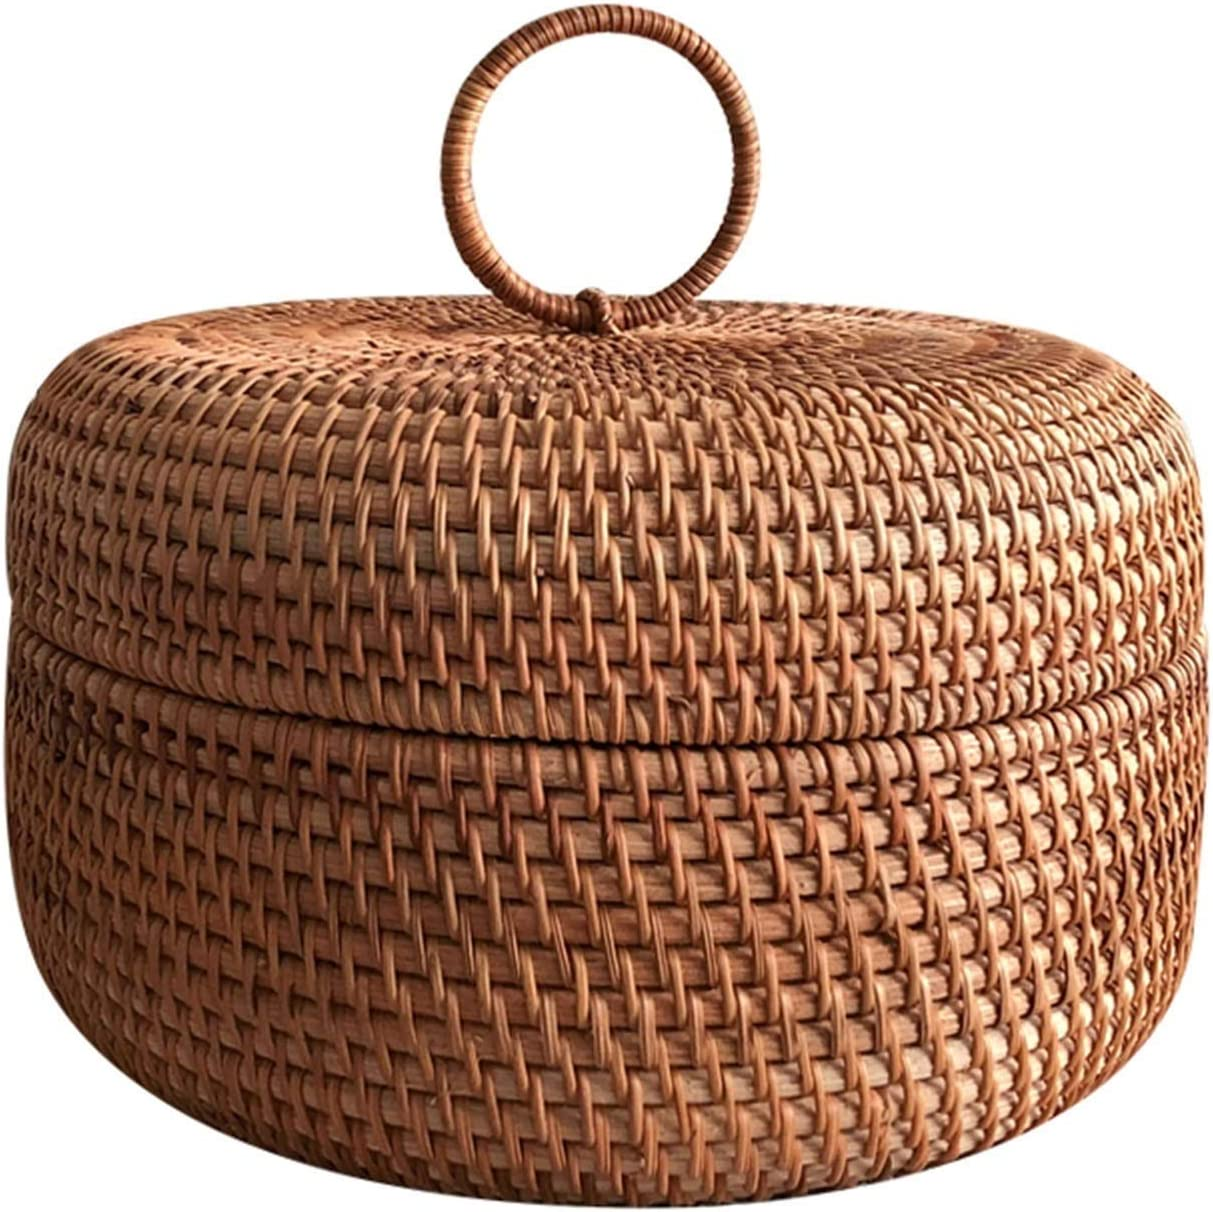 Rattan Basket with Today's only Cover Save money Fruit Wove Storage Round Handmade Bread